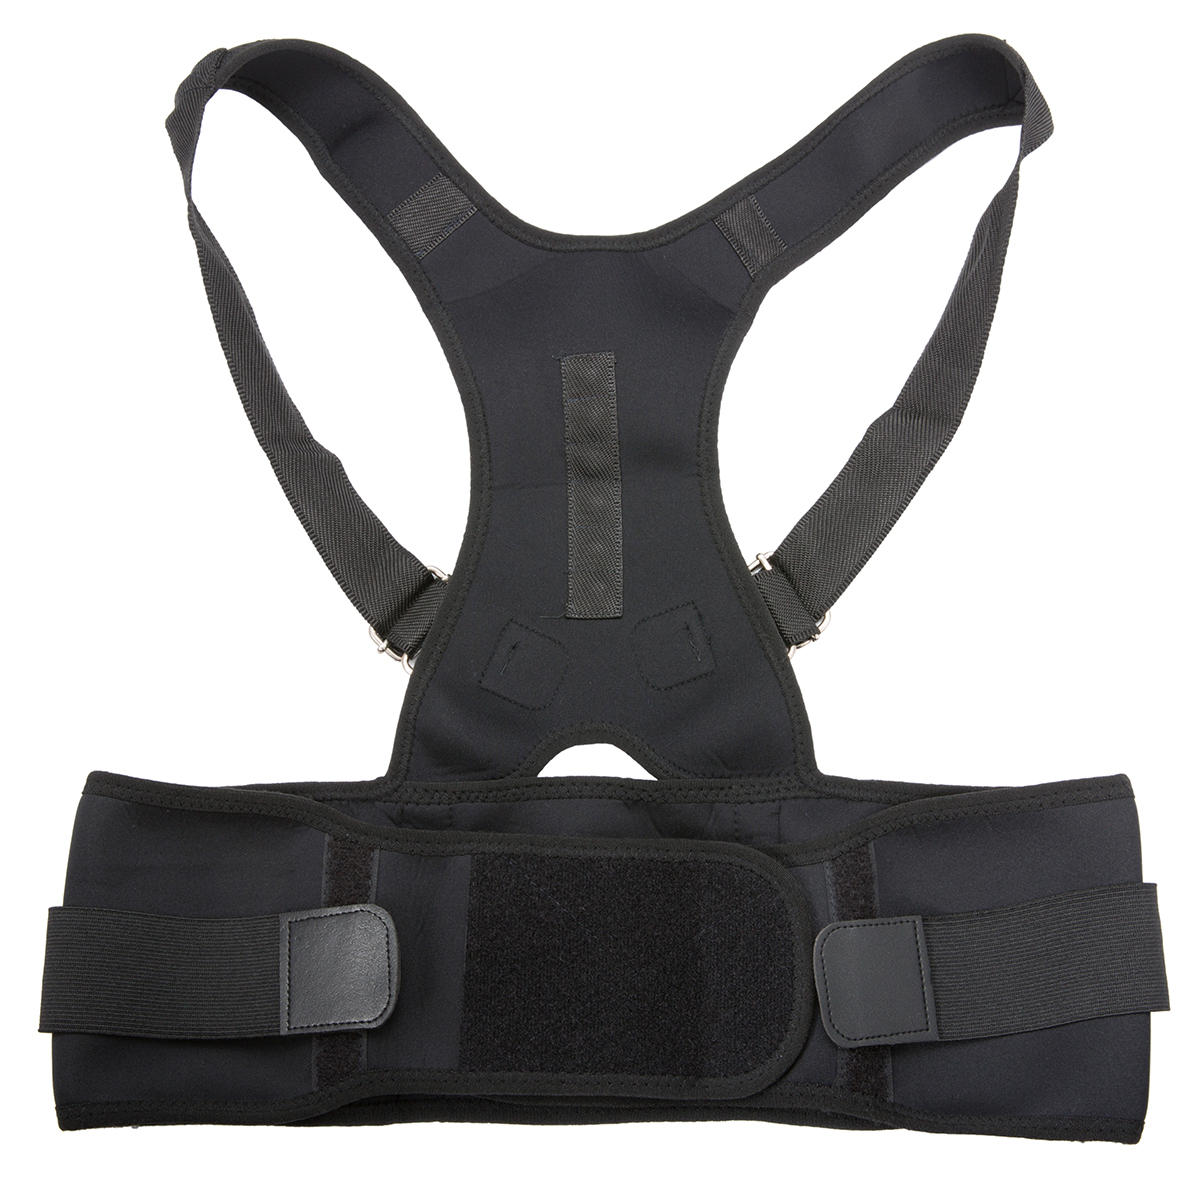 Adjustable Back Support Shoulder Posture Pain Relief Correctorbelt Strap Lumbar Spine Support Back Protector